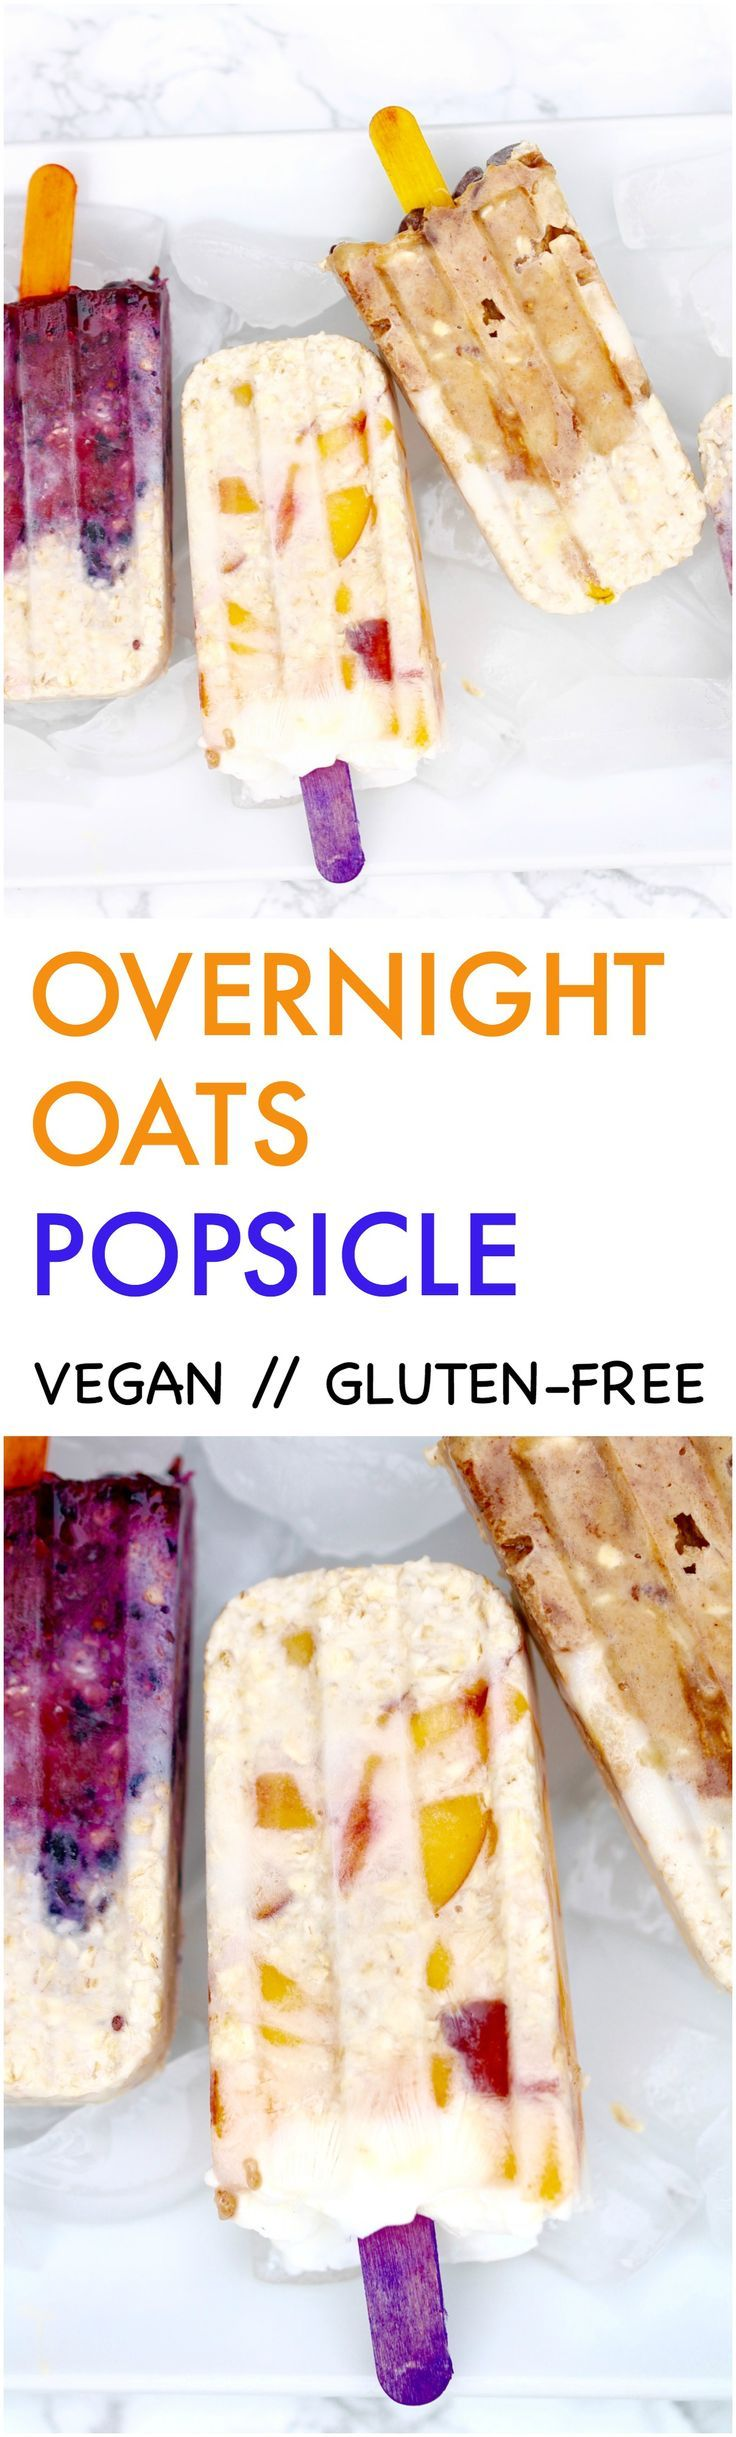 urn your favorite overnight oats into popsicles. It is a nutritious and fun treat for Summer and great for grab n' go breakfast & snack.